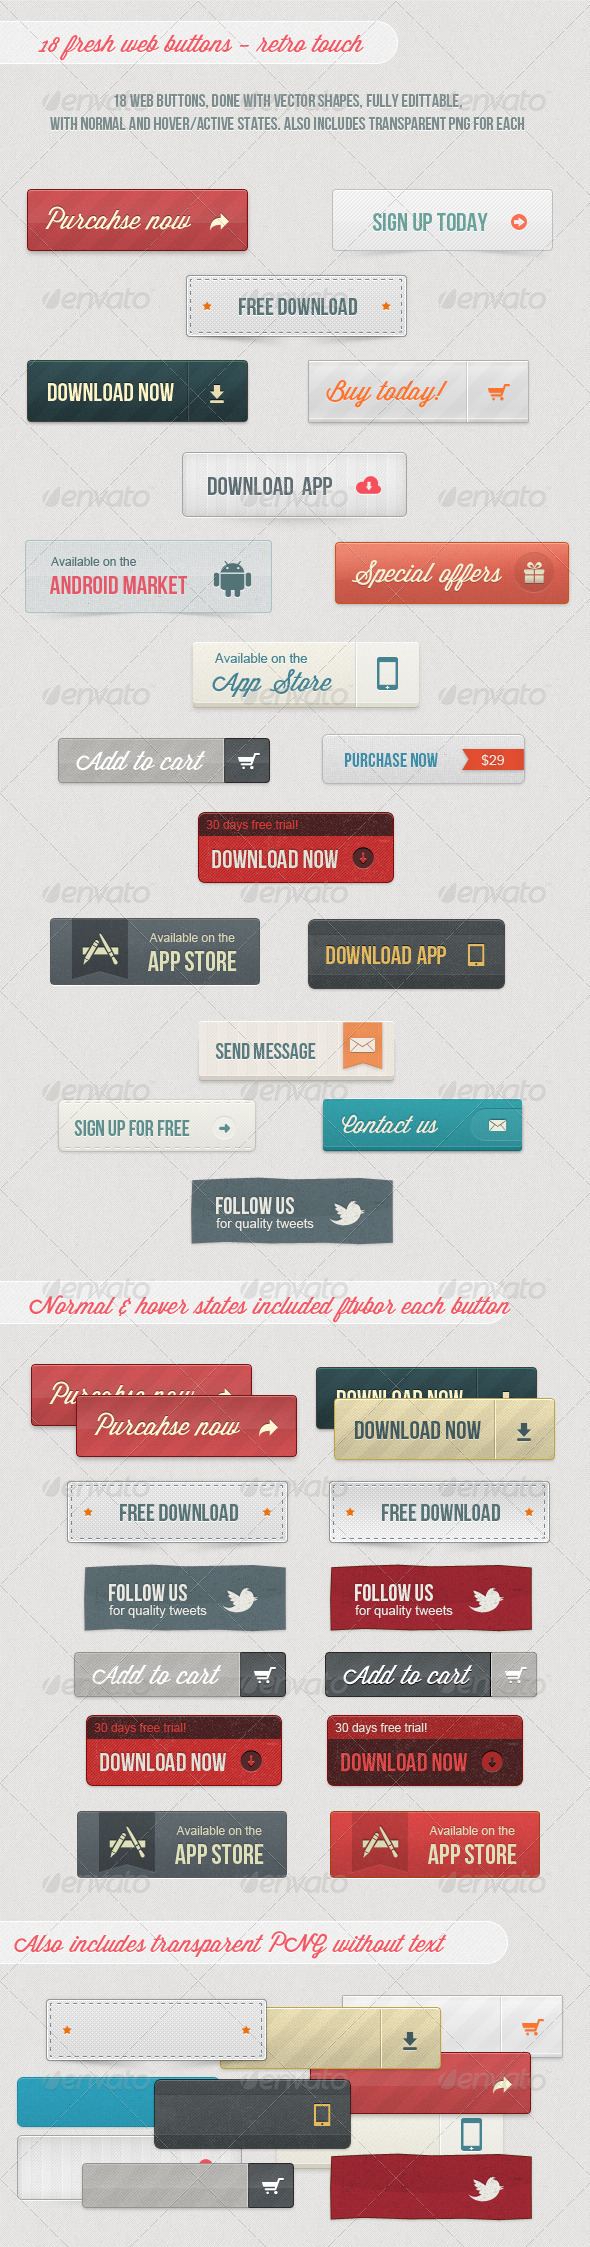 18 Fresh Web Buttons - Retro Touch - Buttons Web Elements